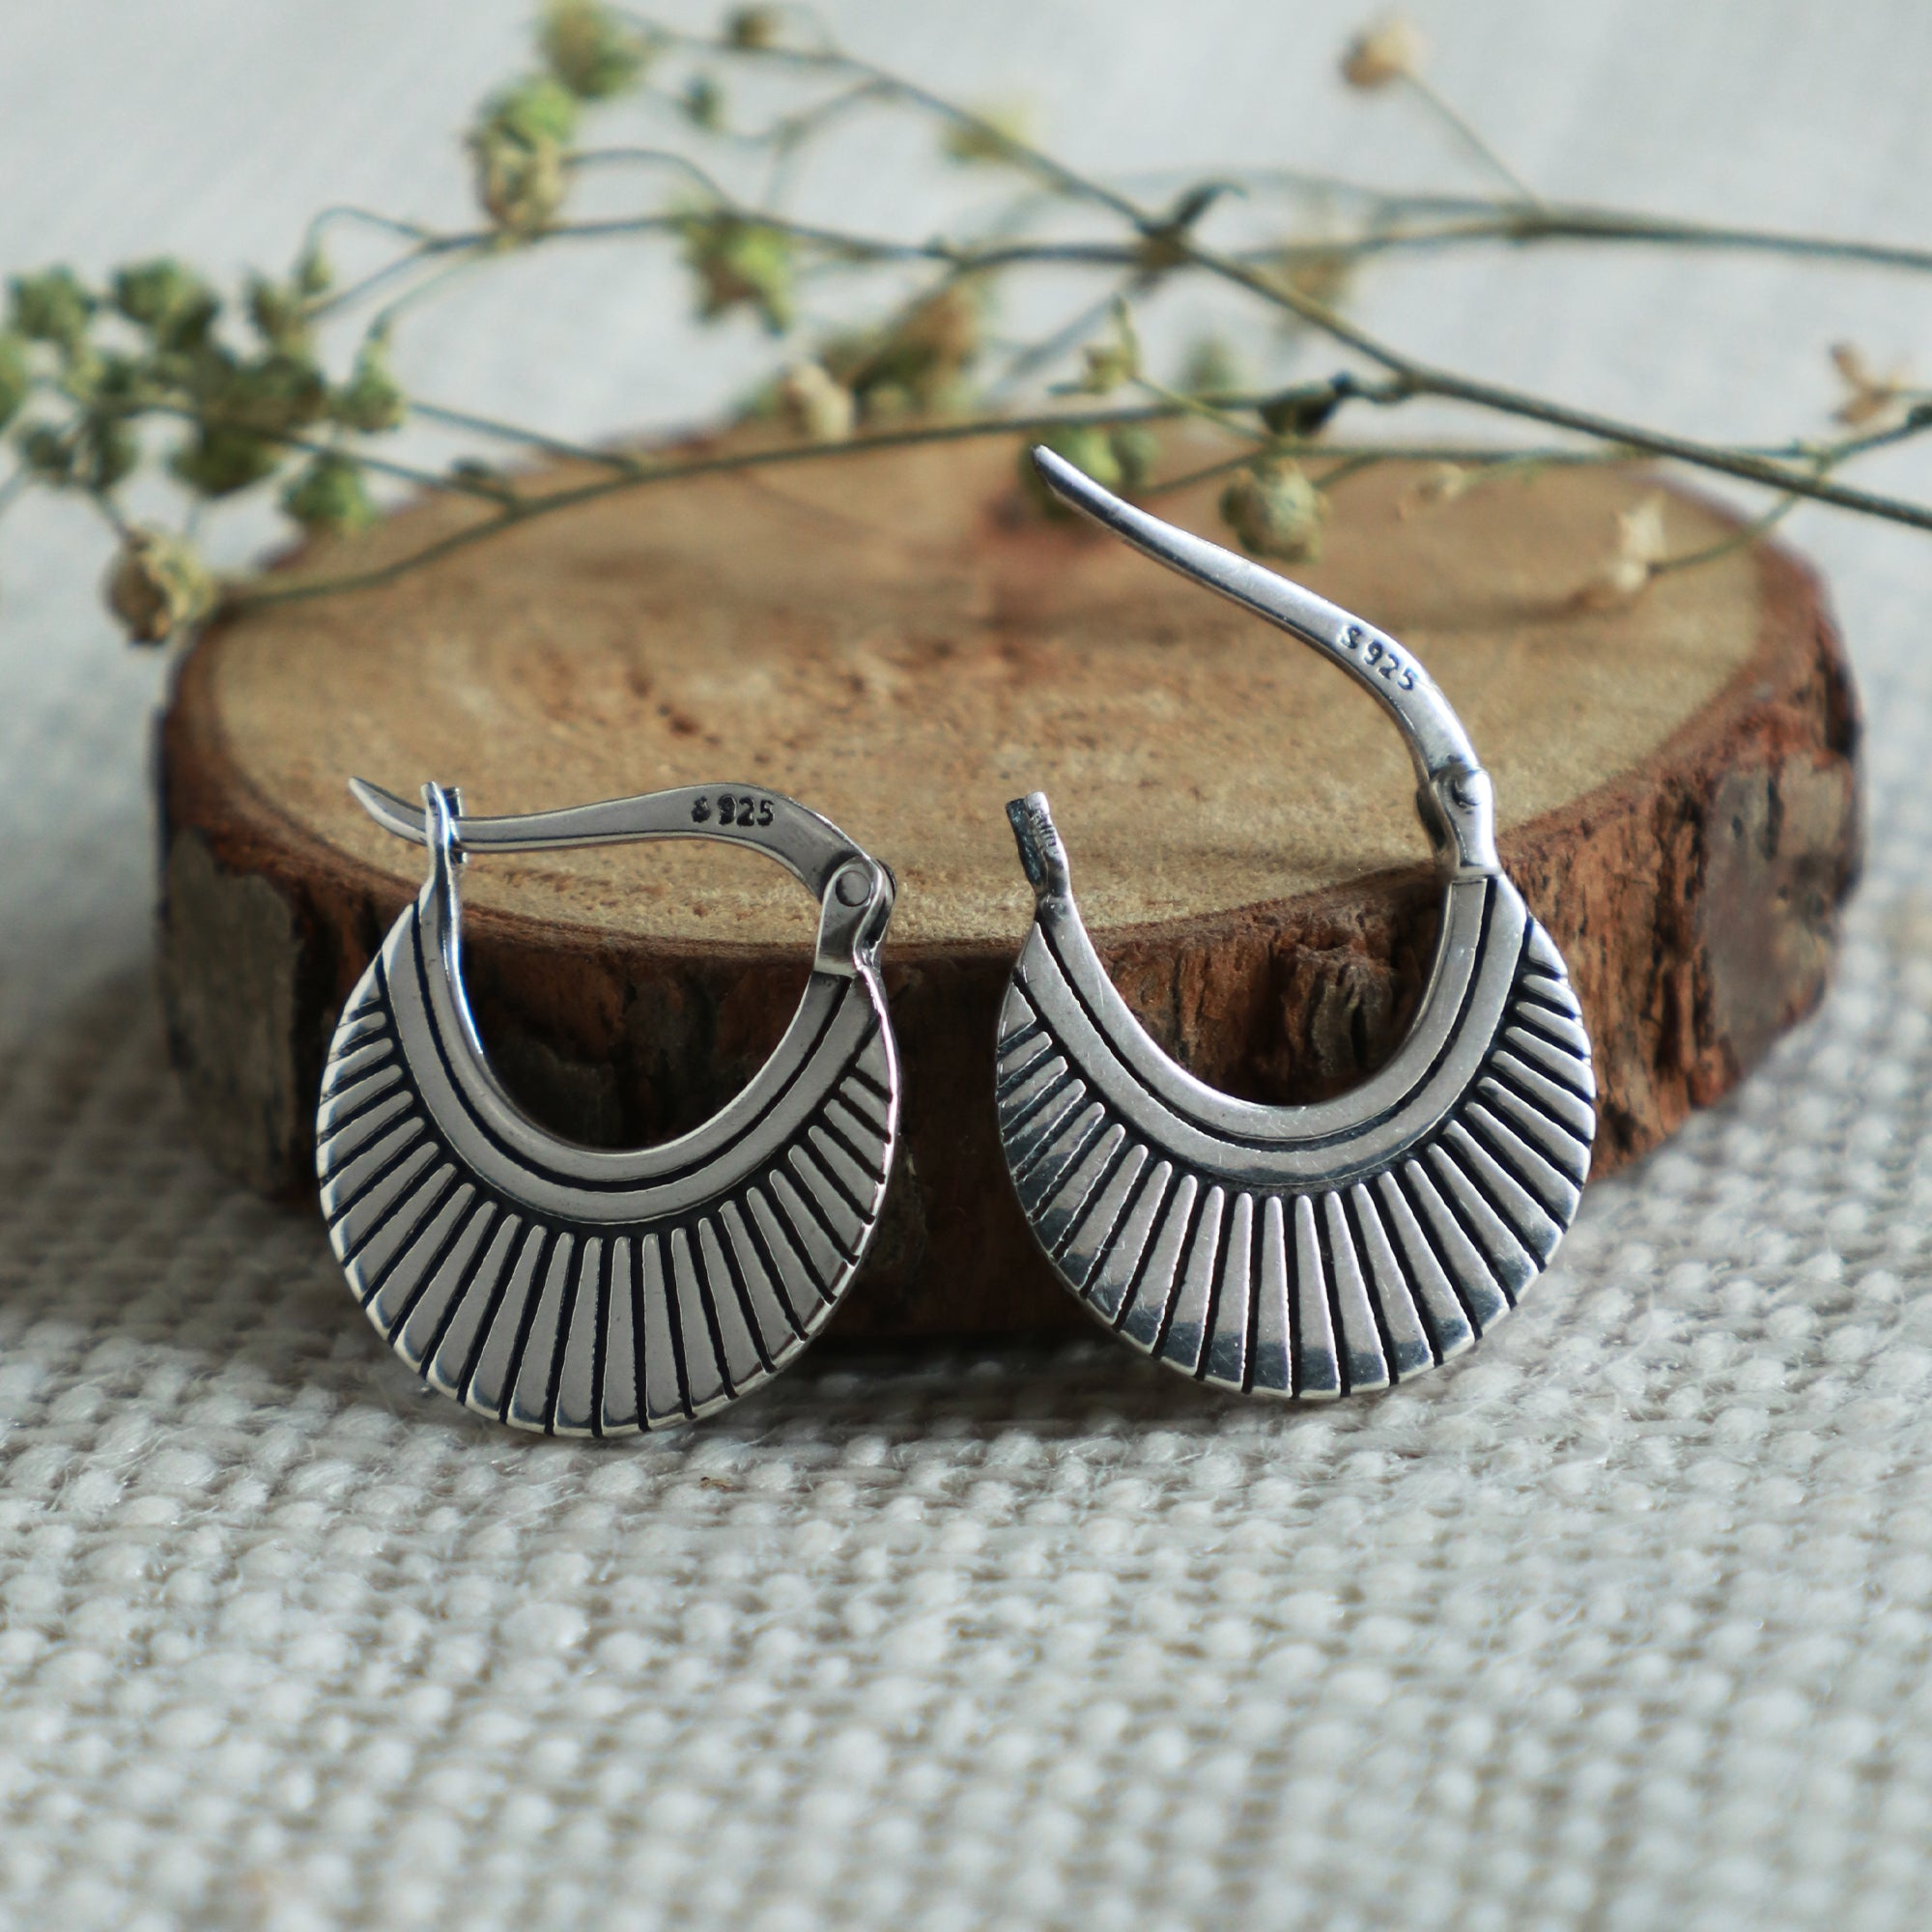 Oxidised Silver Crescent Hoops